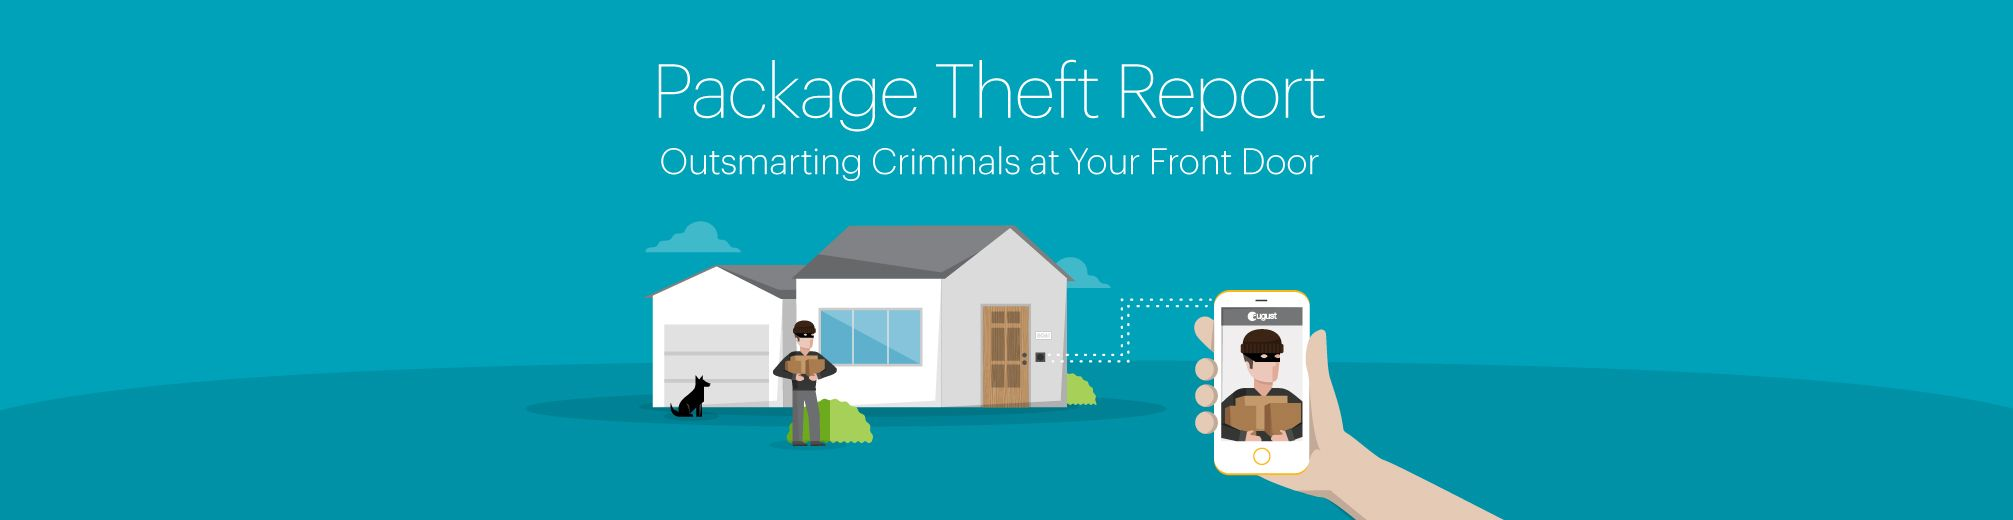 Research: Package Theft Report